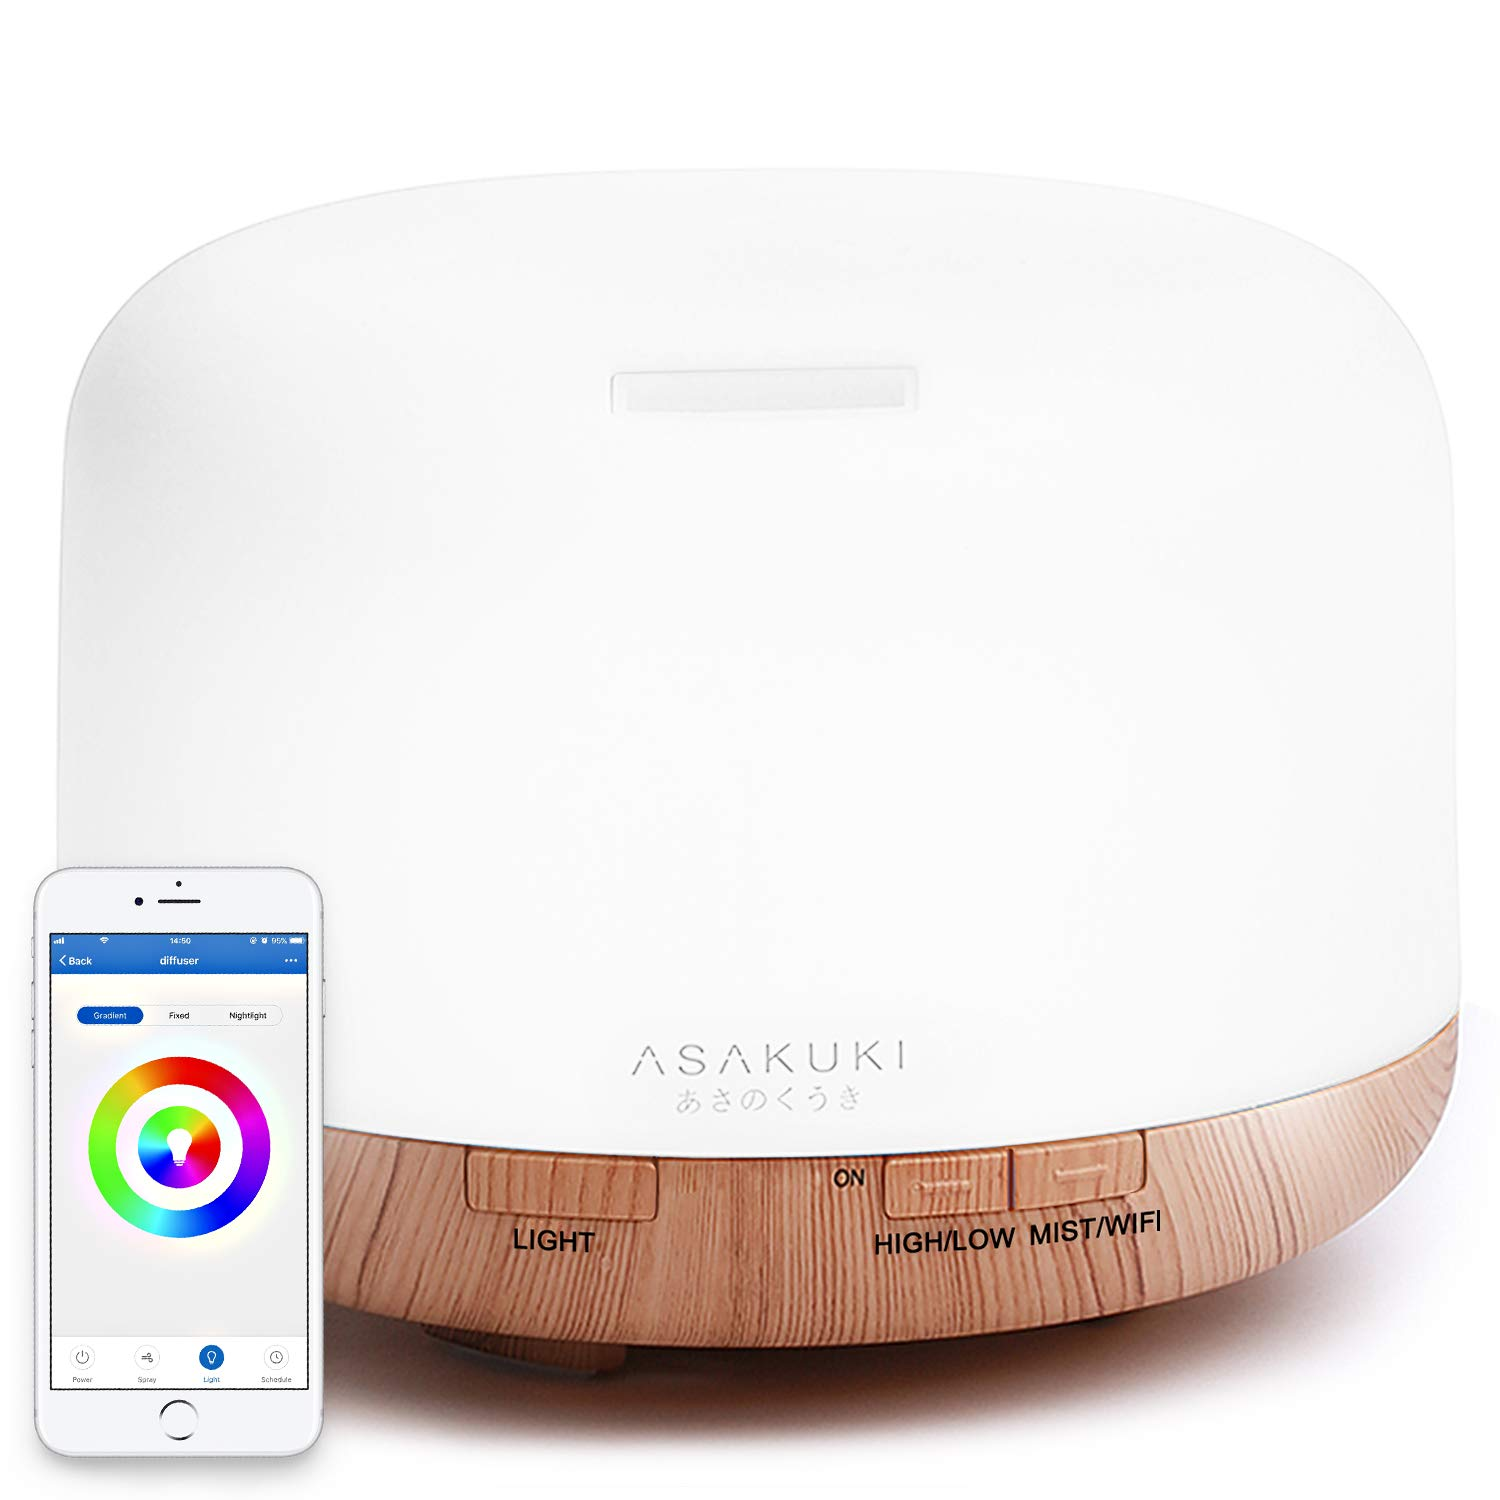 ASAKUKI Smart Wi-Fi Essential Oil Diffuser, App Control Compatible with Alexa, 2019 UPGRADE Design 500ml Aromatherapy Humidifier for Relaxing Atmosphere in Bedroom and Office-Better Sleeping&Breathing by ASAKUKI